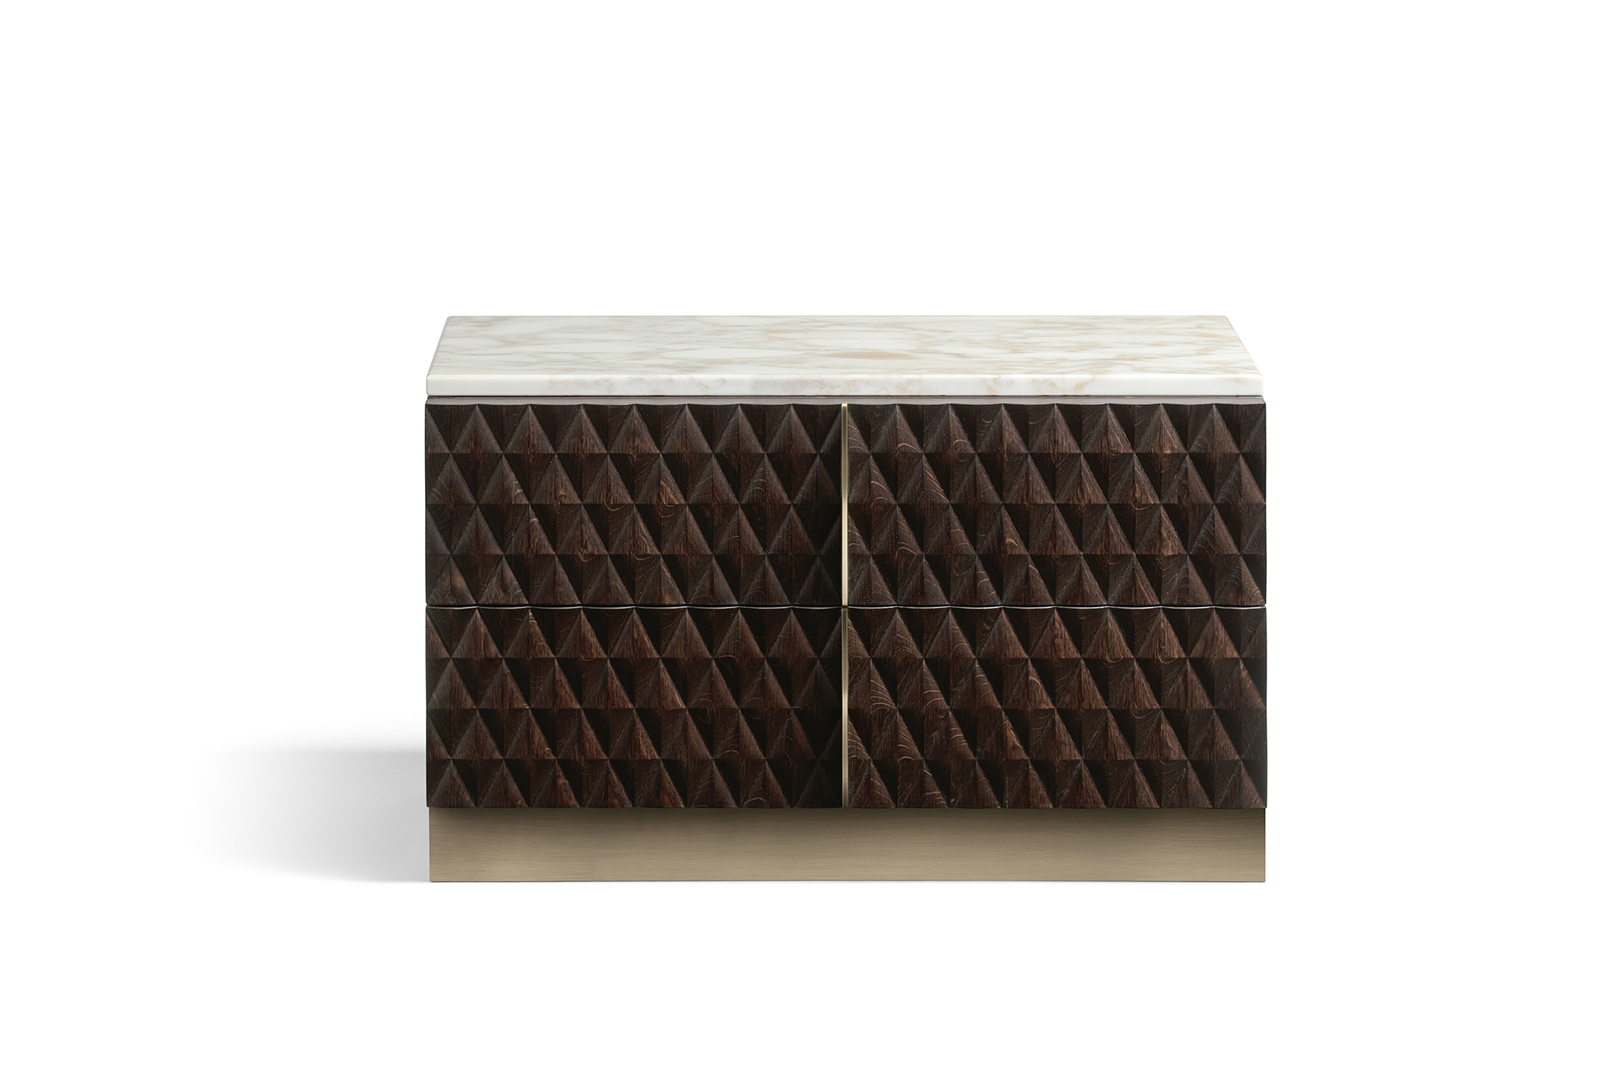 Two-drawer bedside table with diamond pattern